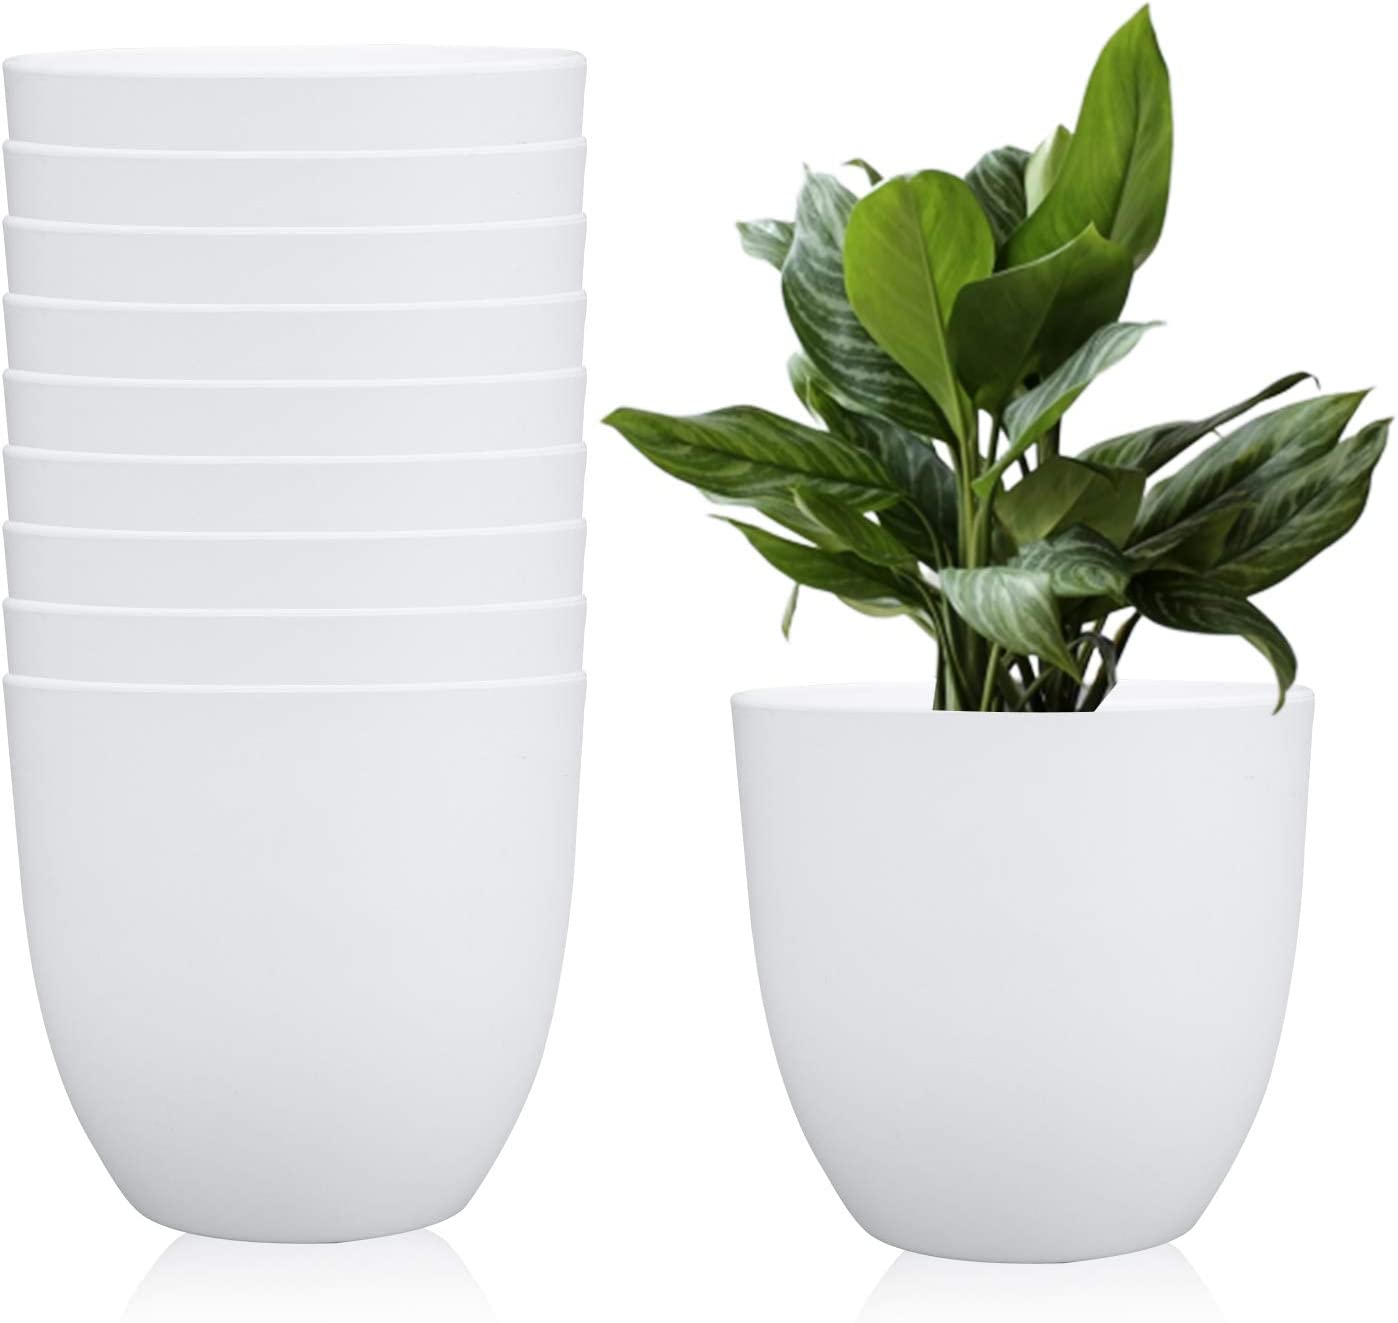 6.3 Inches Over item handling Plastic Round Garden NEW before selling Fashionable Pot Planters Plant